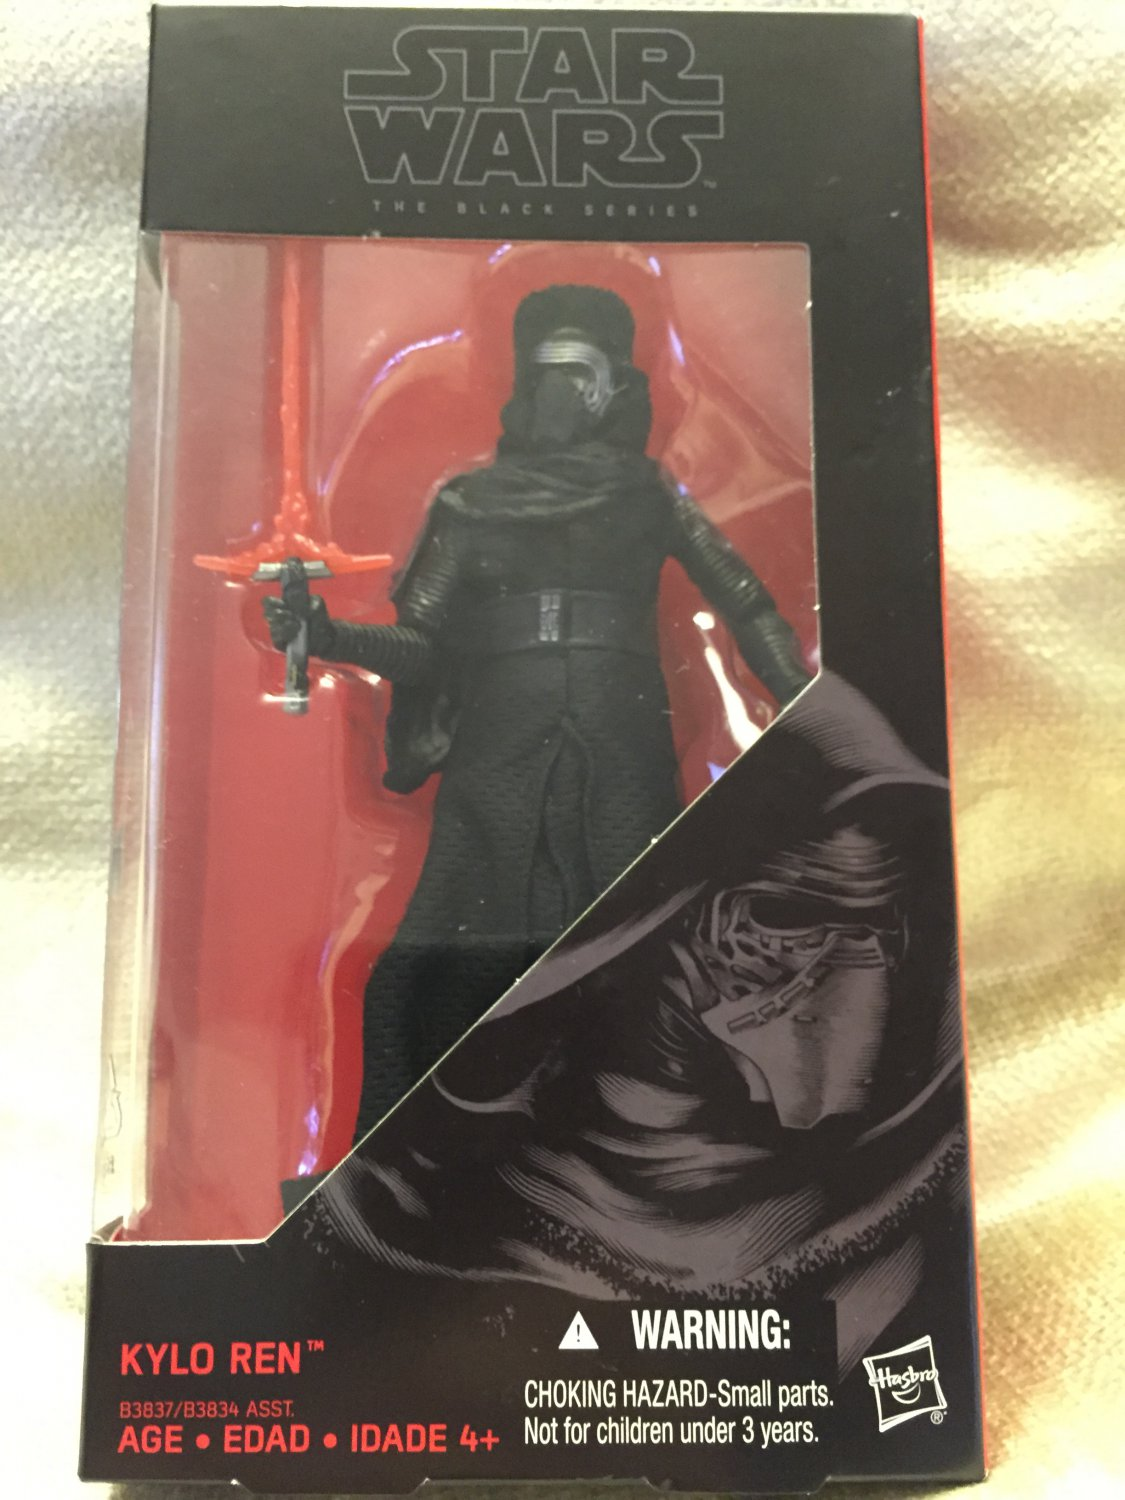 Kylo Ren - Star Wars The Black Series 6 inch figure